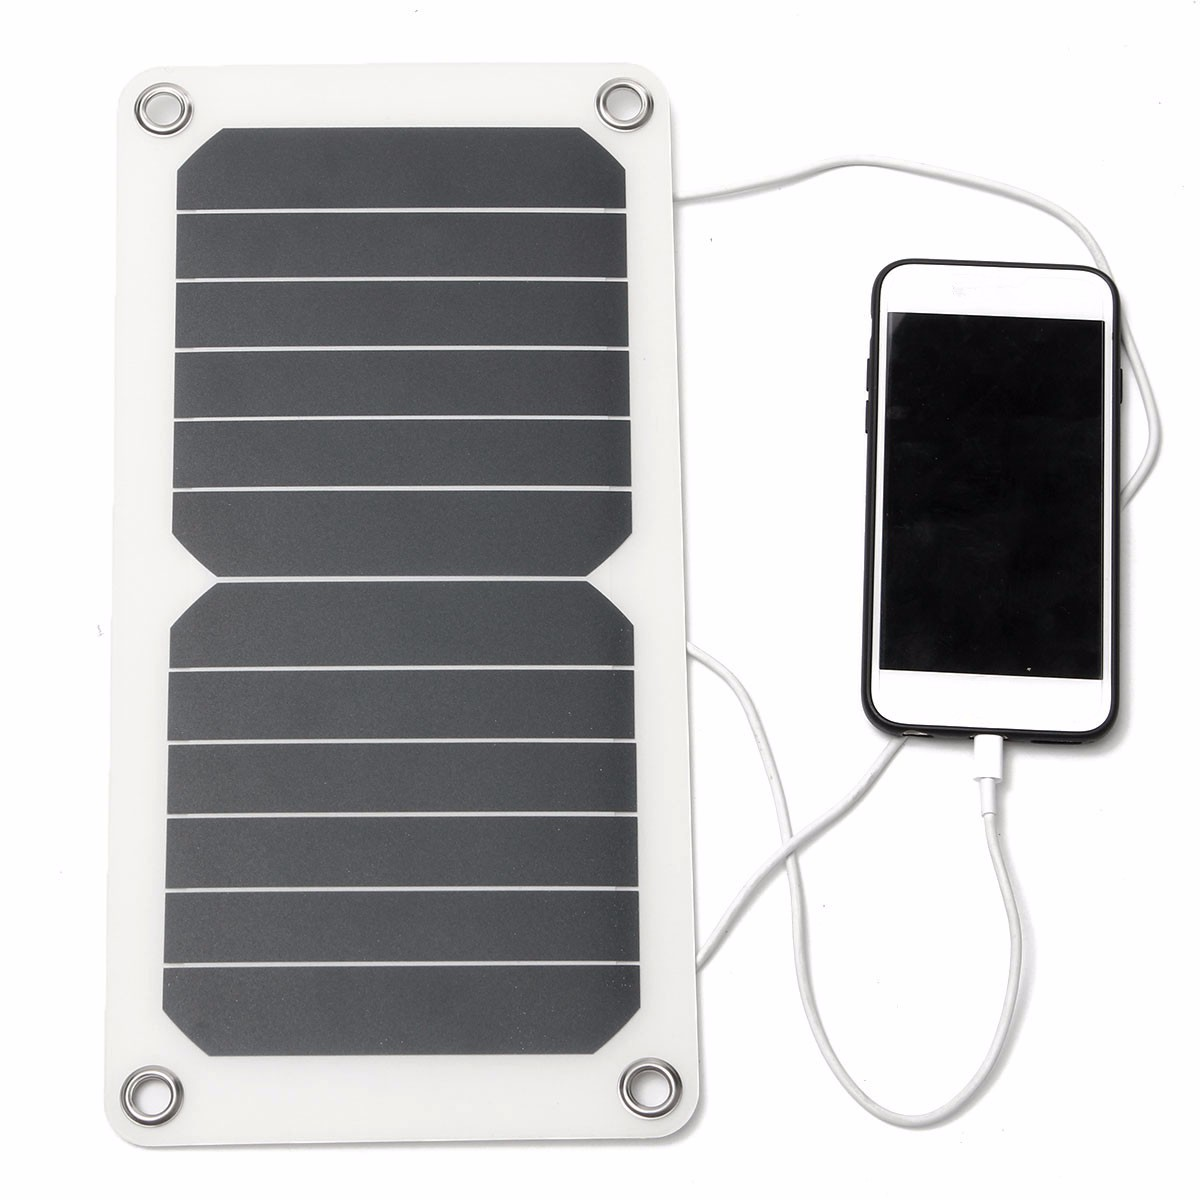 6.5W 5V Solar Panel USB Charger Semi-flexible Portable Solar 30.3x15.3cm